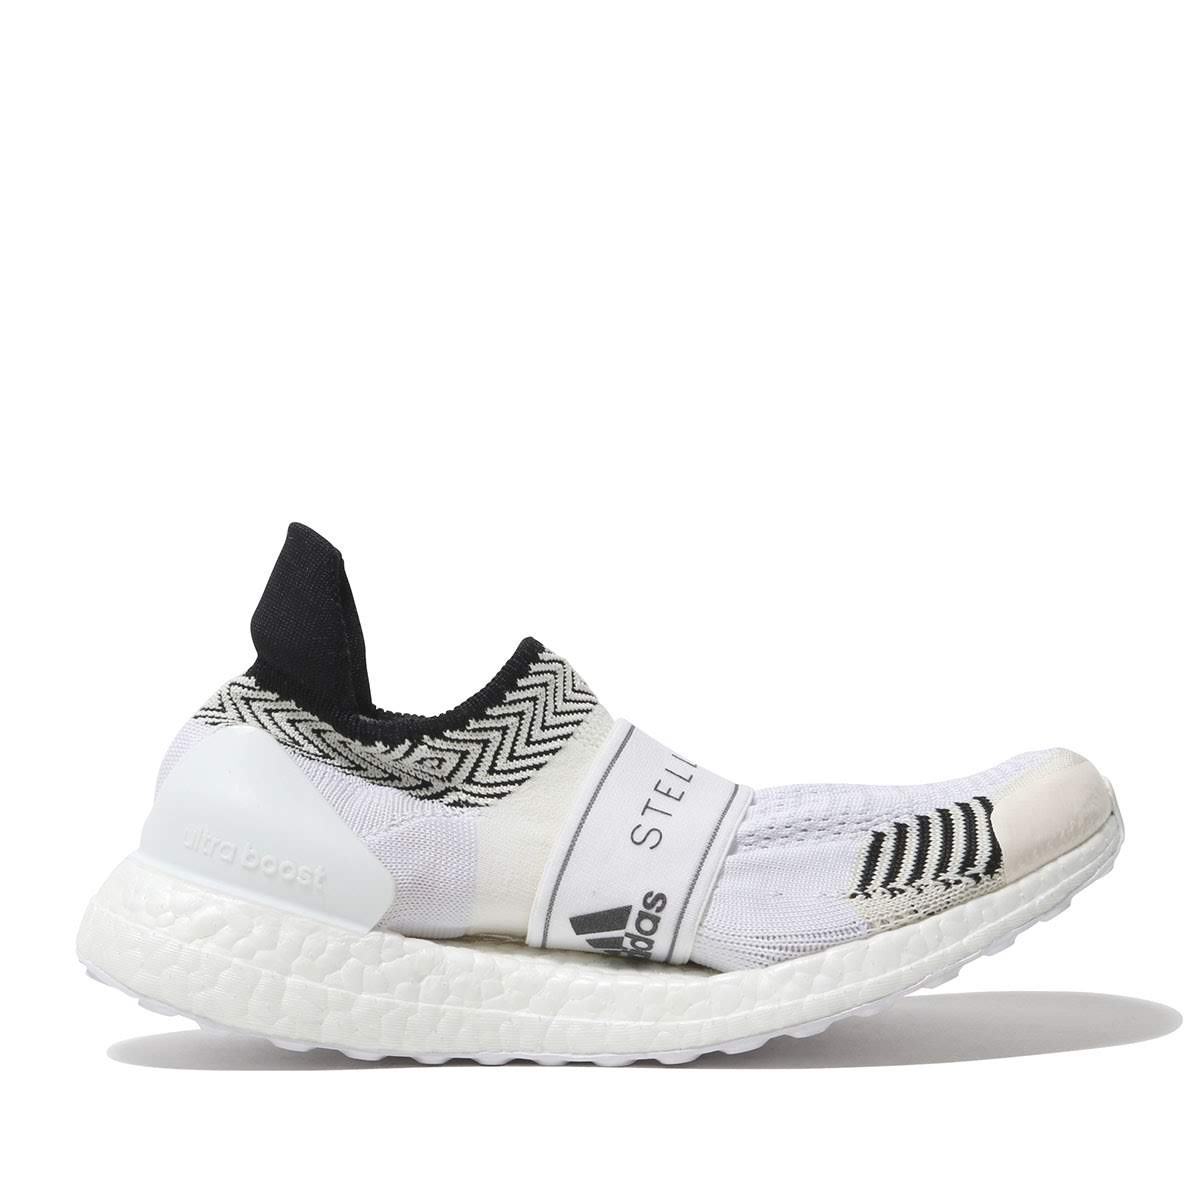 save off 449a0 1effb adidas UltraBOOST X 3D (CORE WHITE/CHALK WHITE/RADIANT ORANGE) (Adidas  ultra boost X 3D)